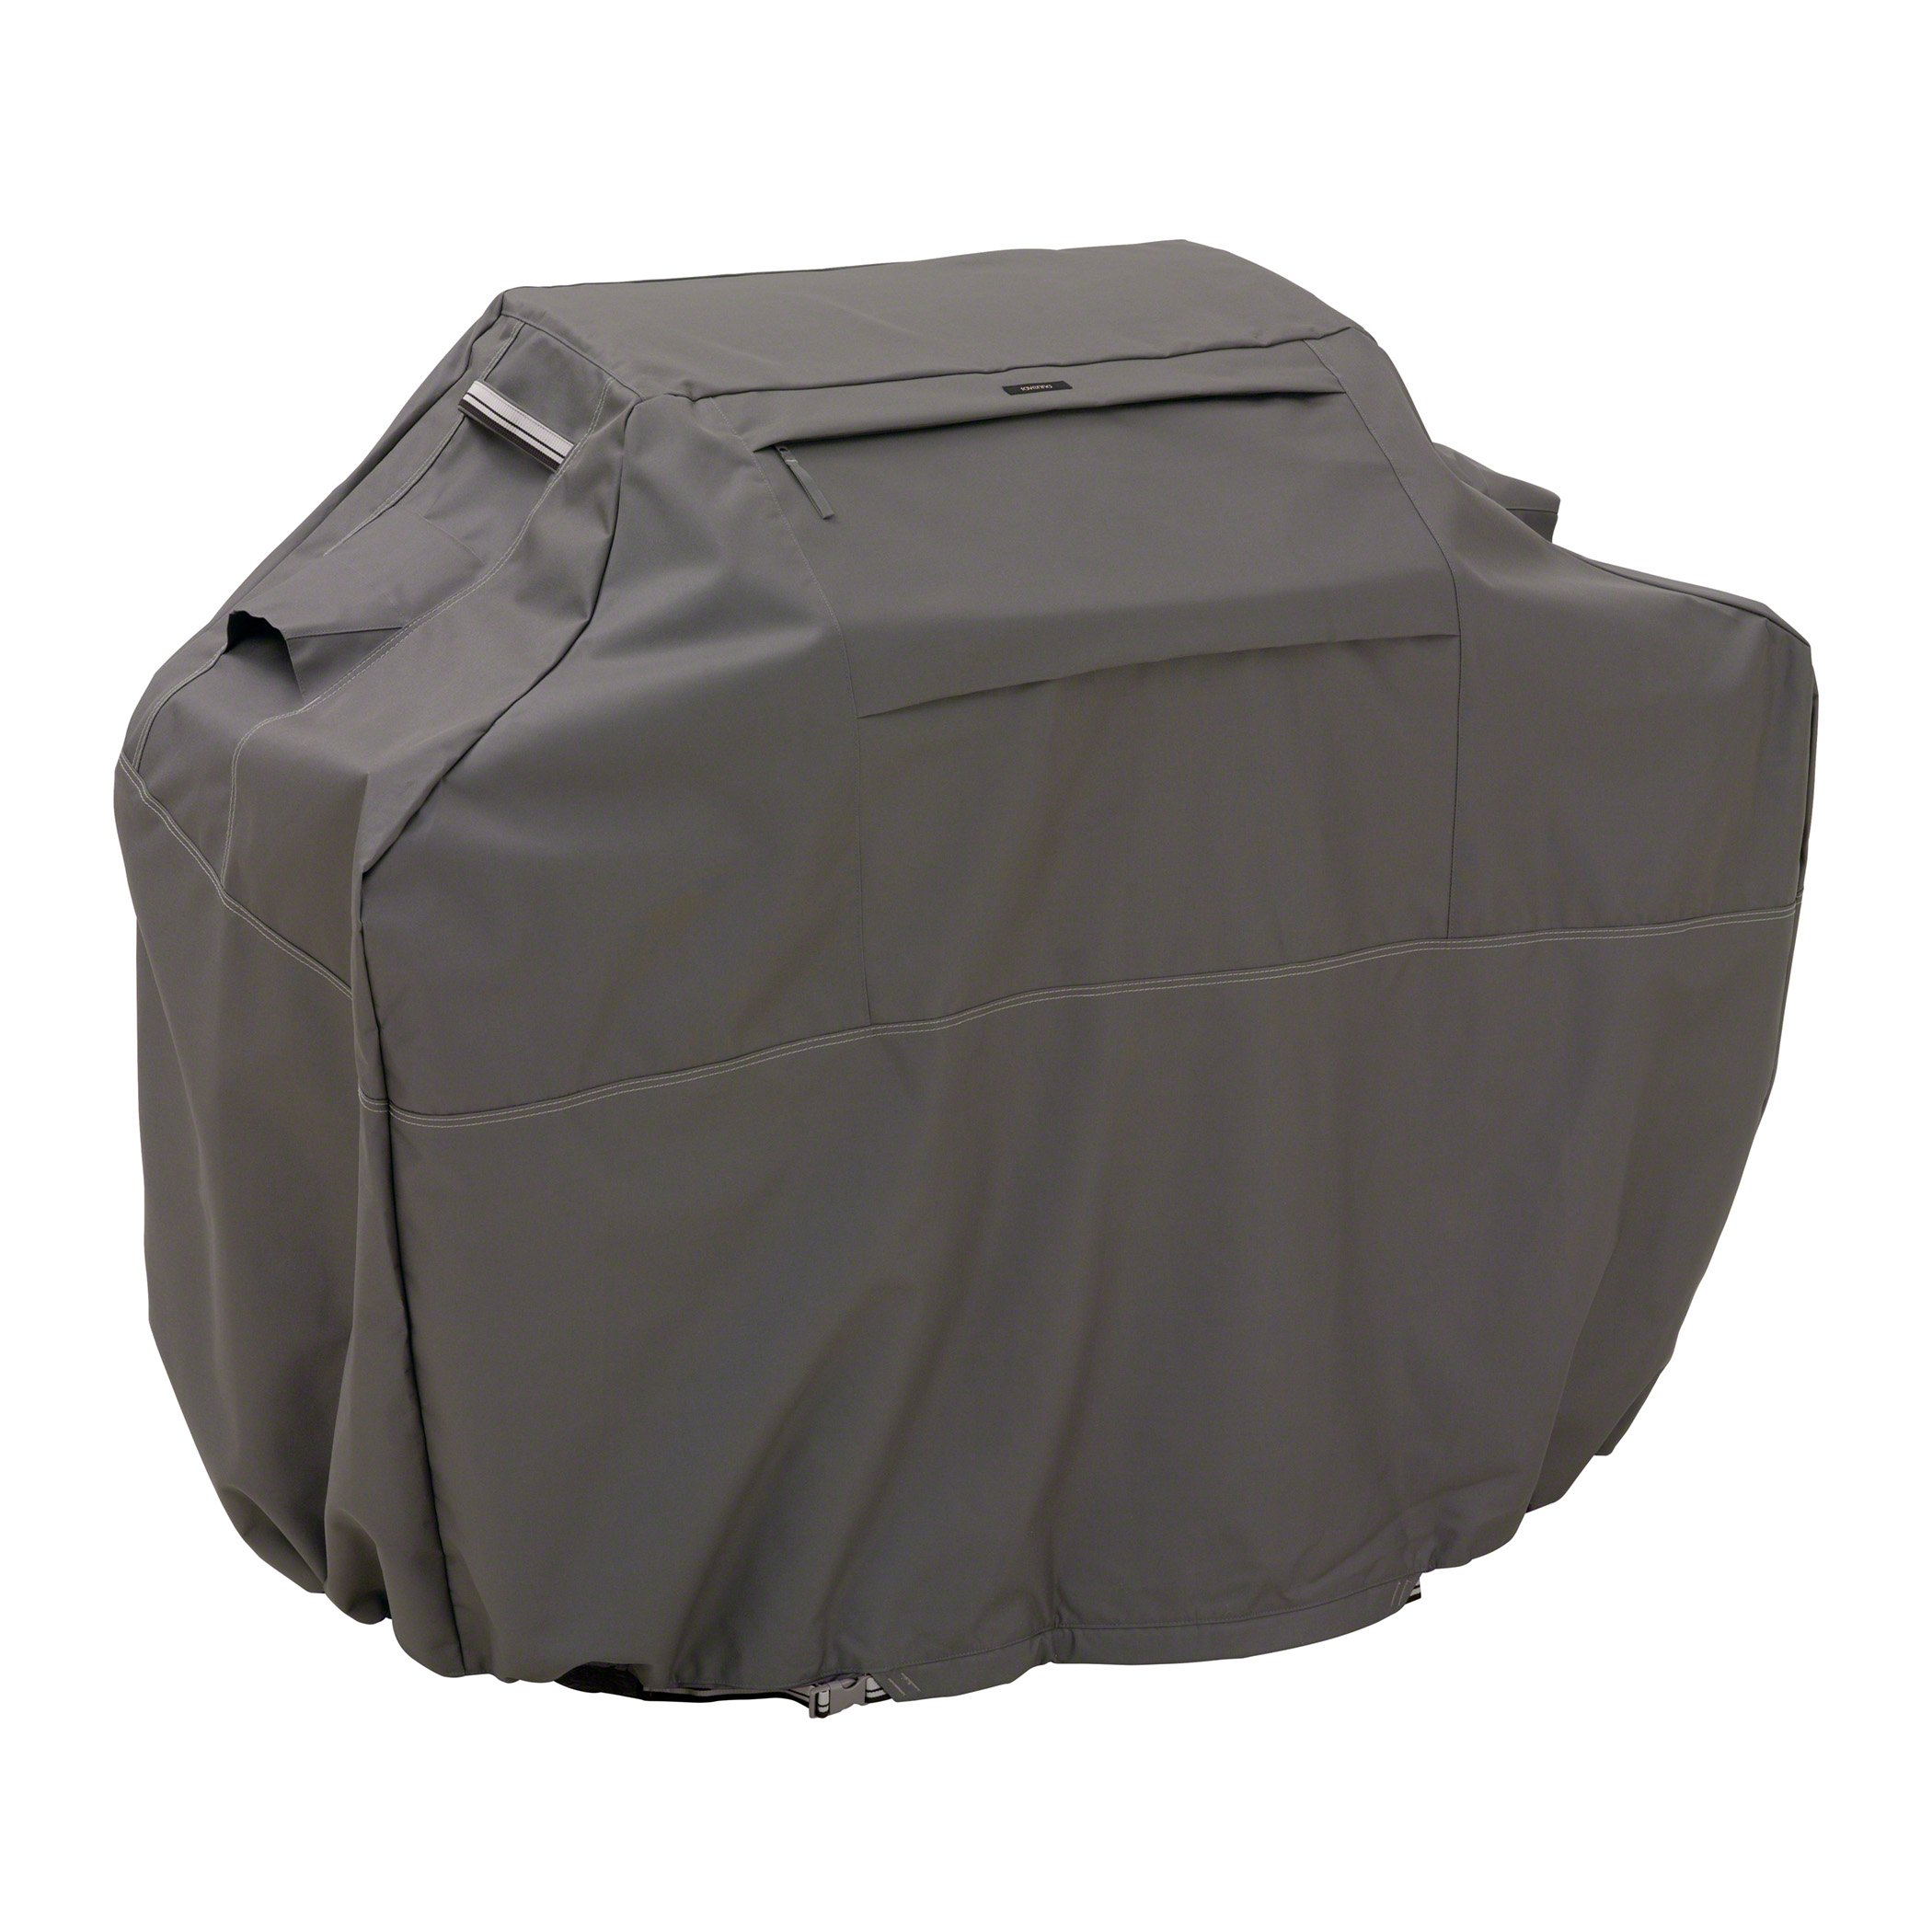 Classic Accessories Ravenna Water-Resistant 38 Inch BBQ Grill Cover